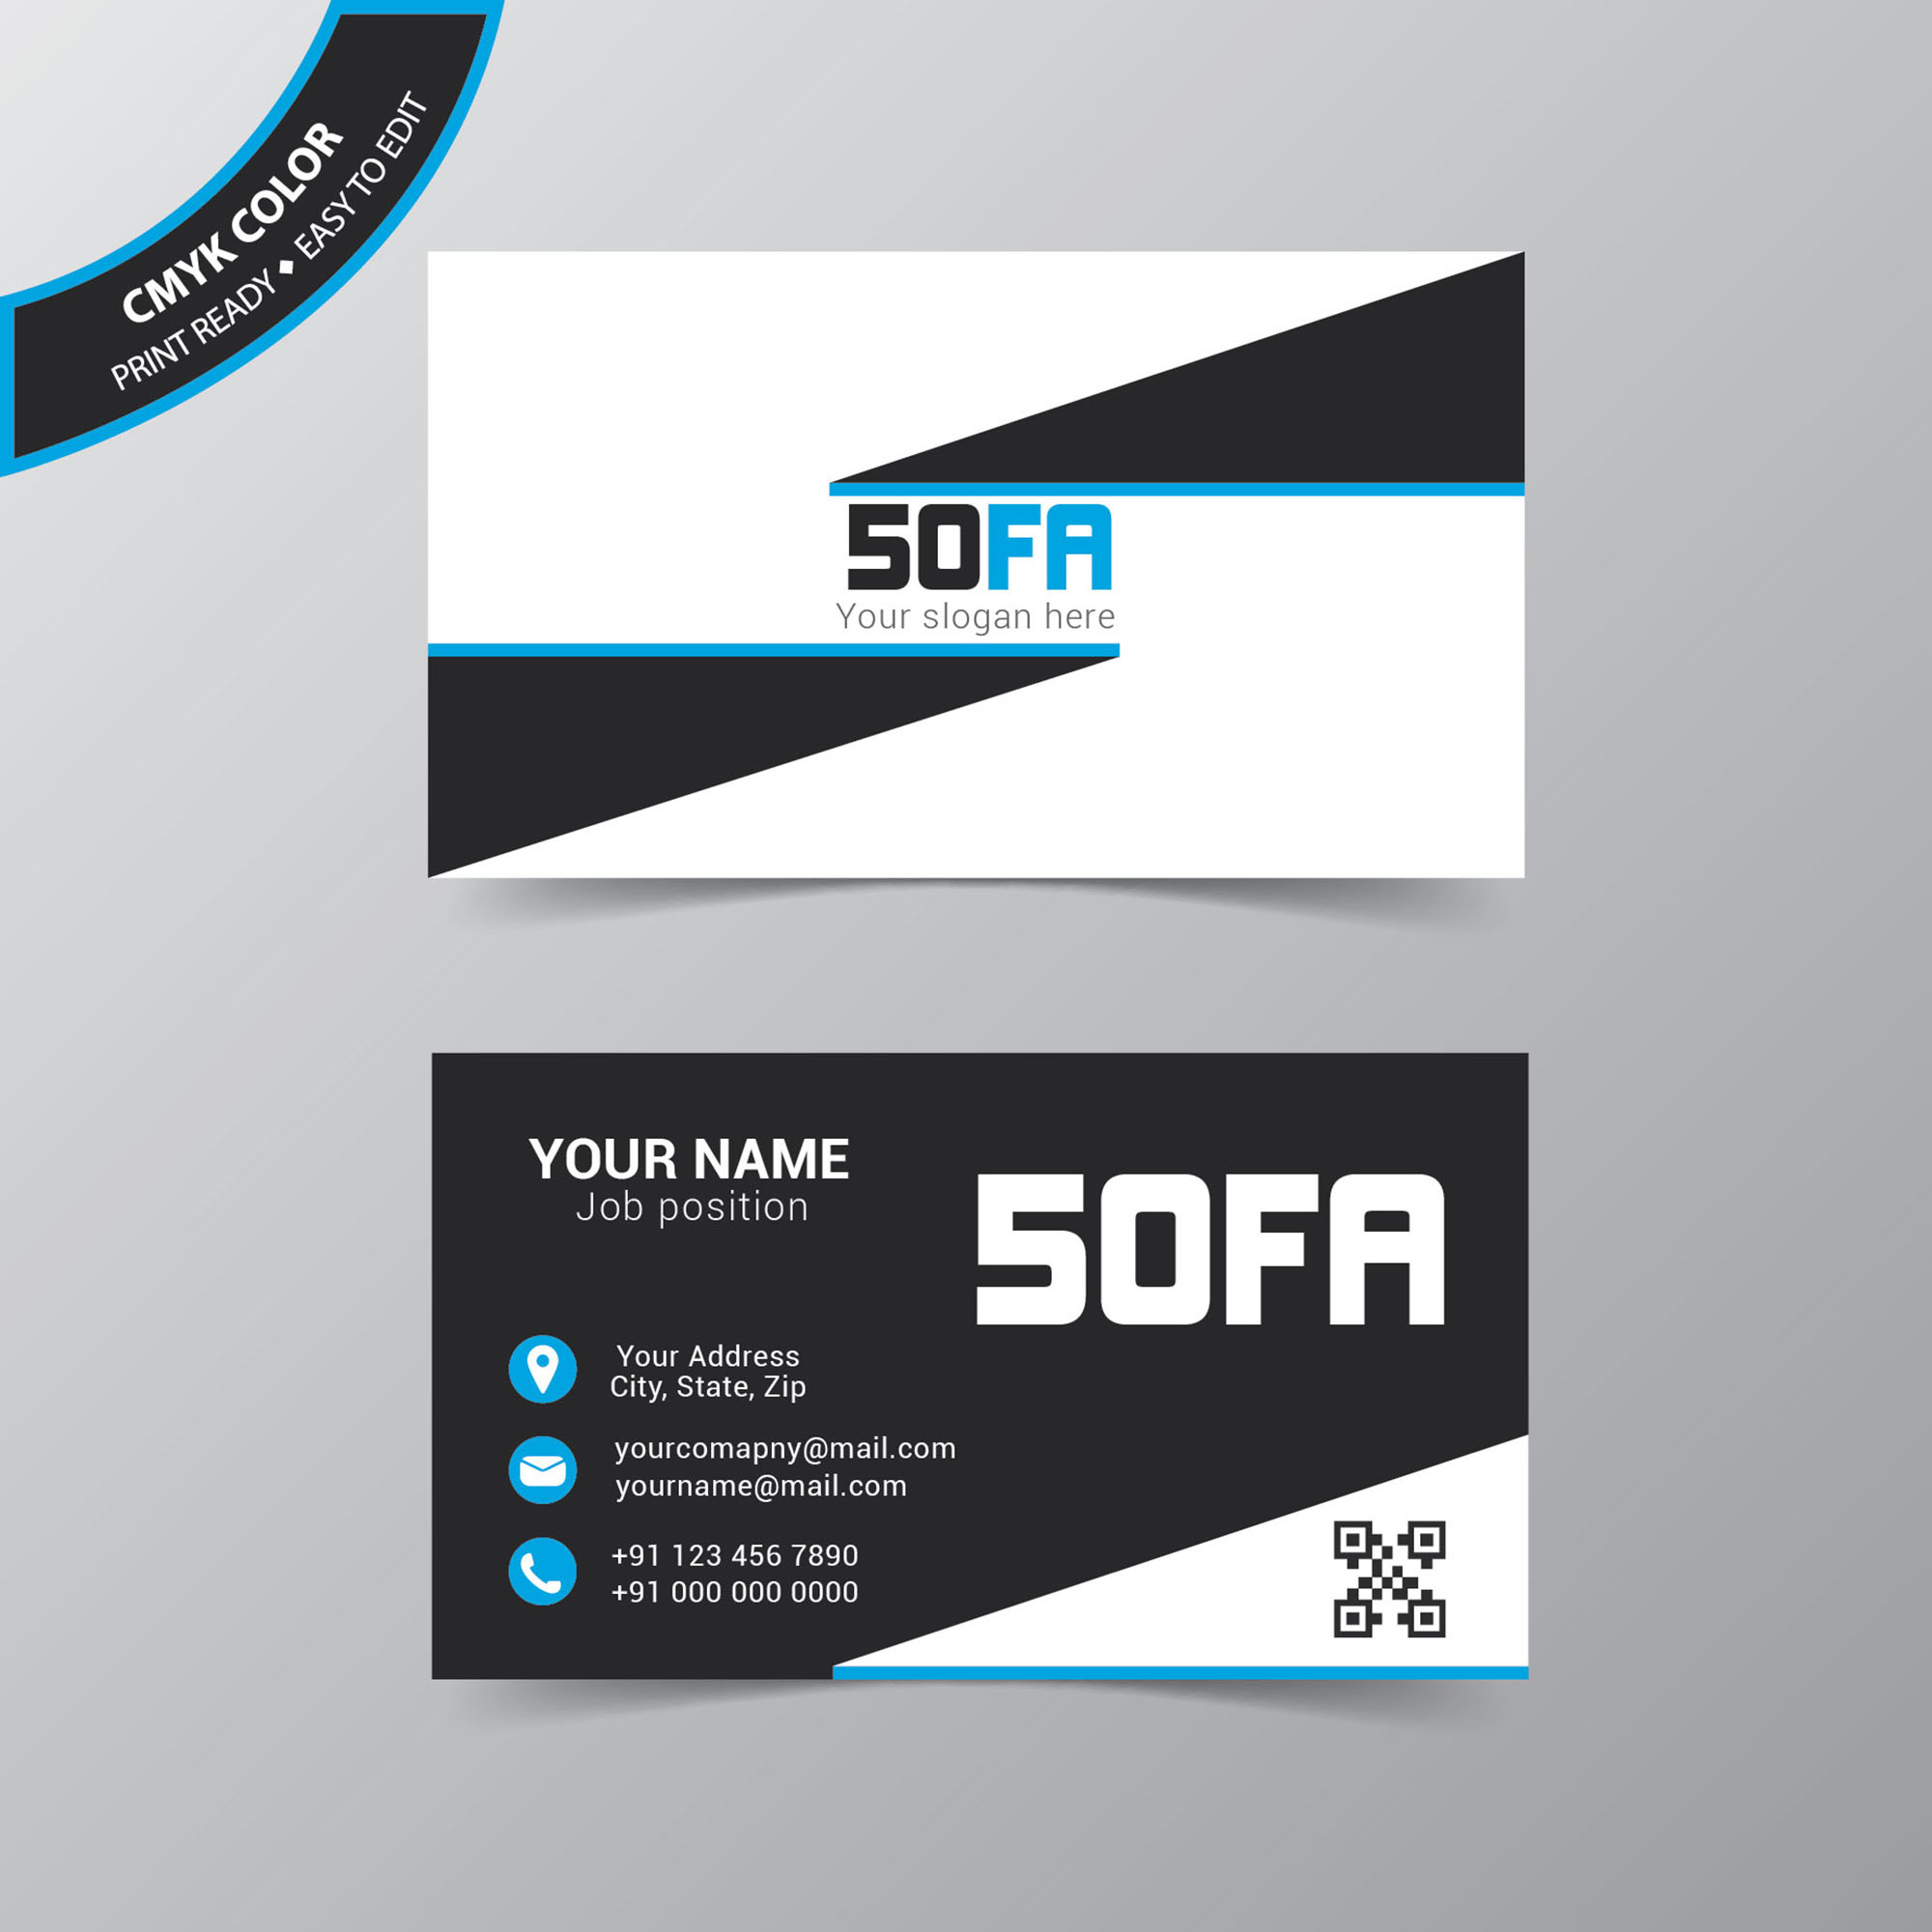 Business card tag graphic design templates free download - Wisxi.com